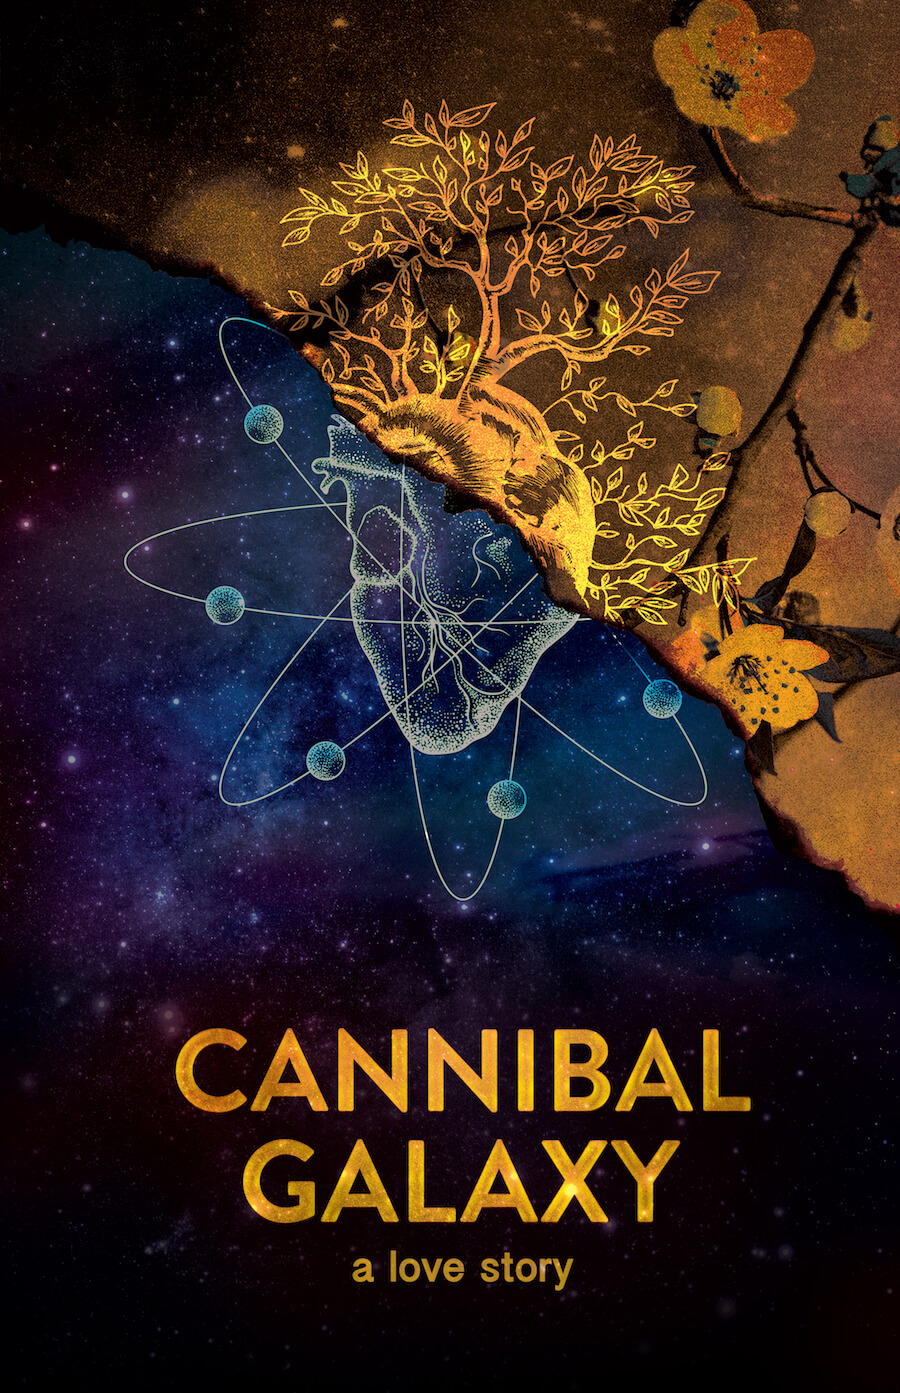 cannibal galaxy a love story poster